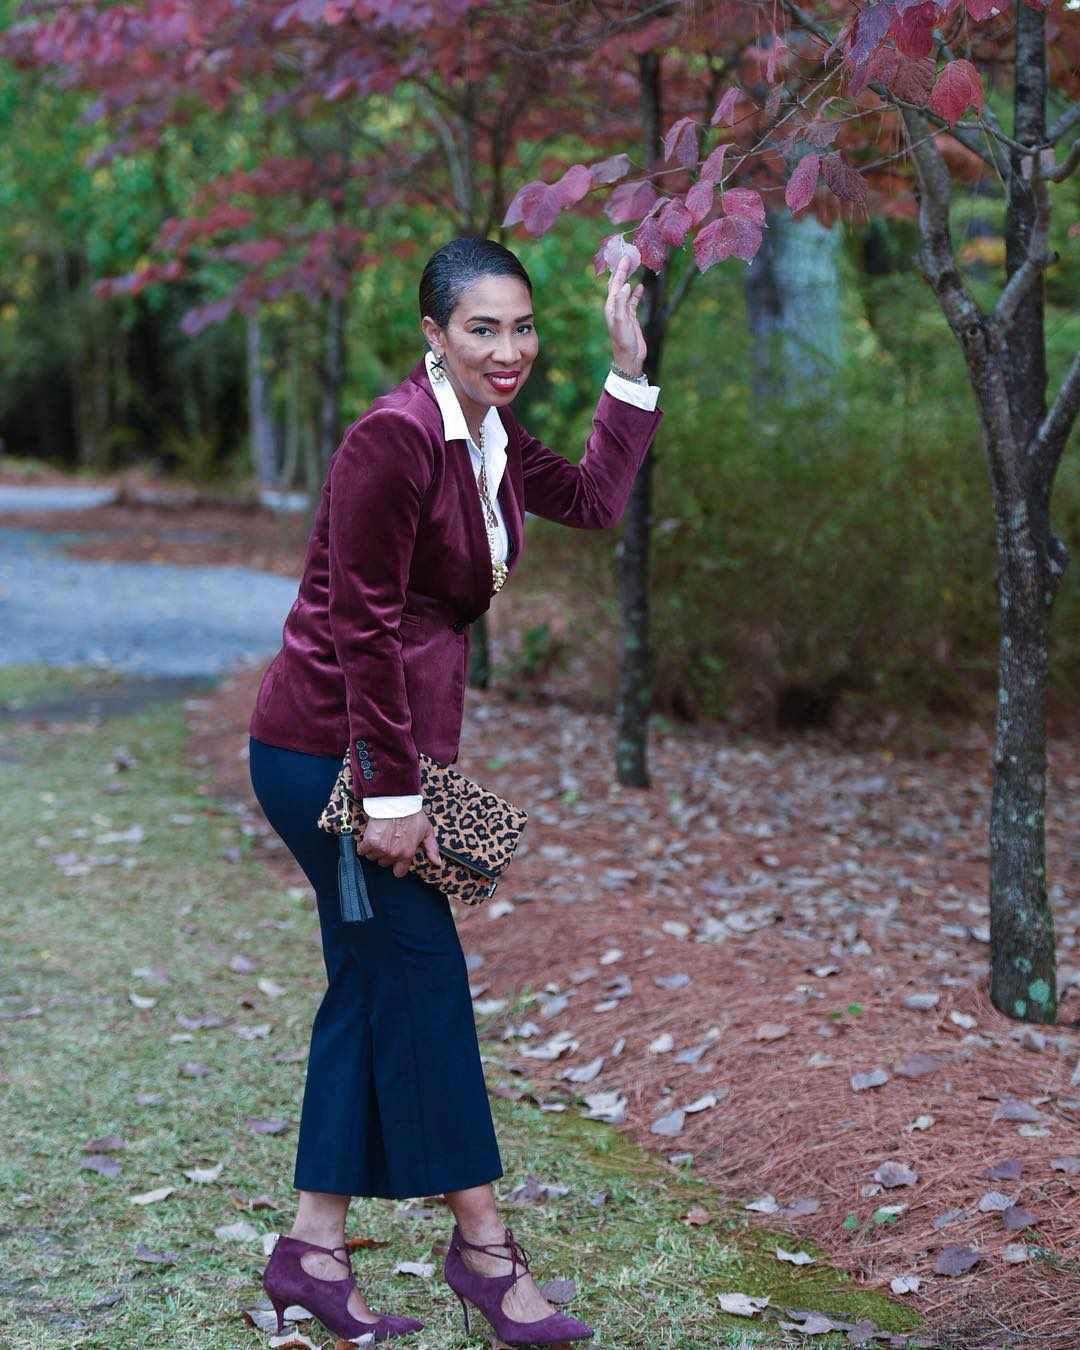 Navy Blue Cropped Pant, White Button Down Shirt, Veleet Jacket With Leopard Purse